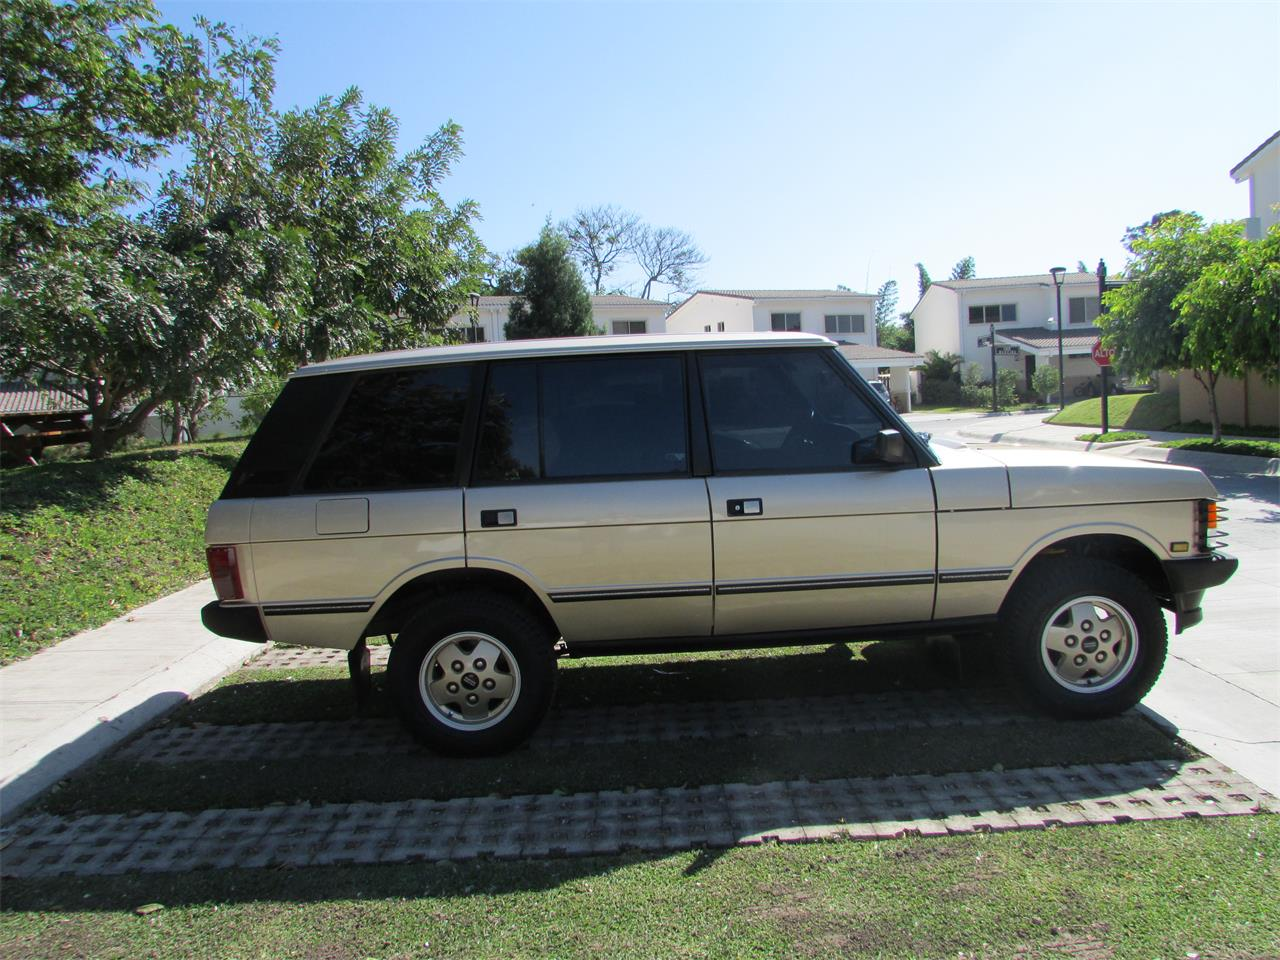 Large Picture of 1993 Range Rover located in San Salvador - $19,500.00 Offered by a Private Seller - GELK